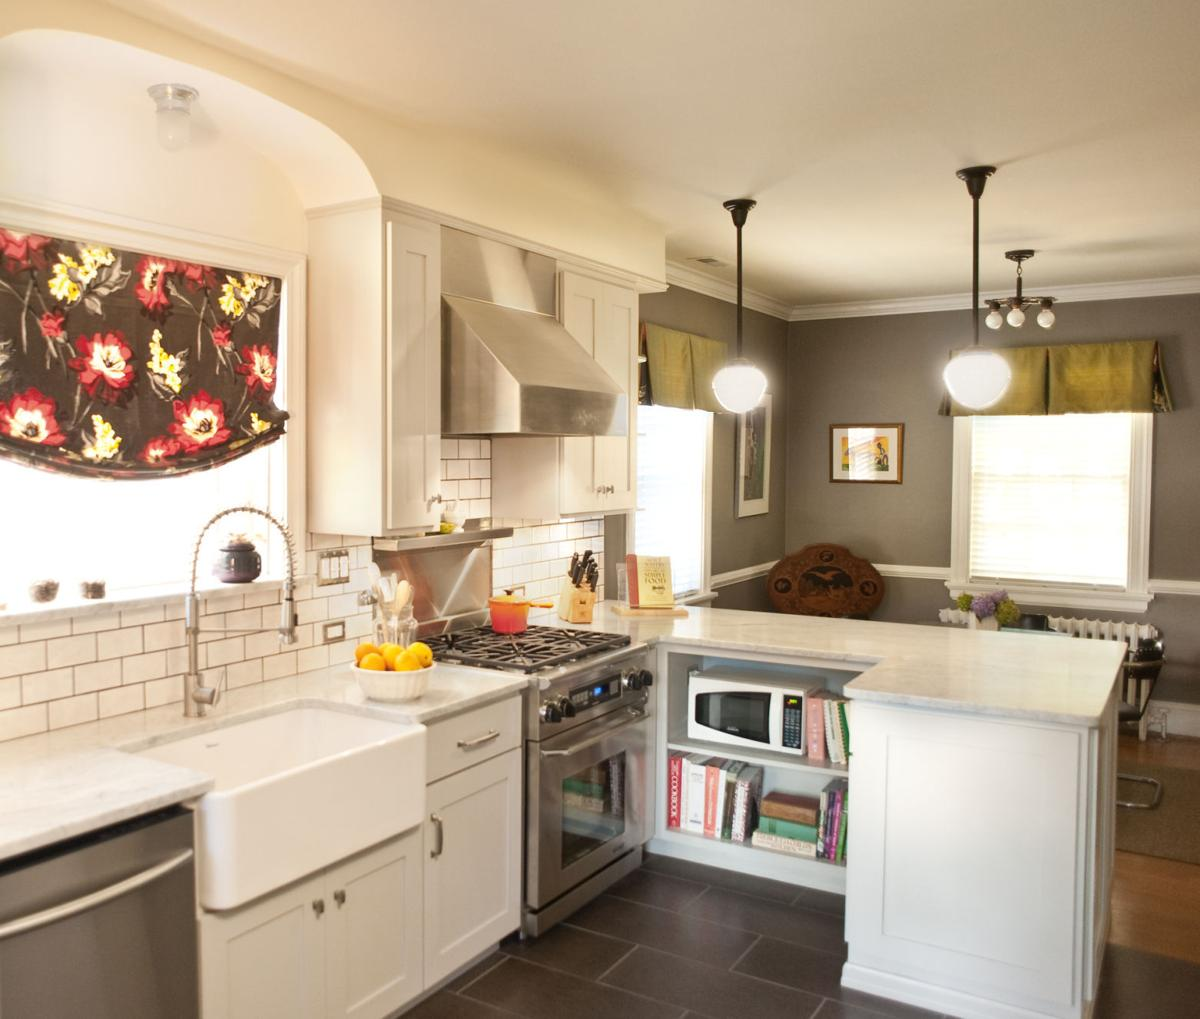 Northside Bungalow Featured In A Better Homes And Gardens